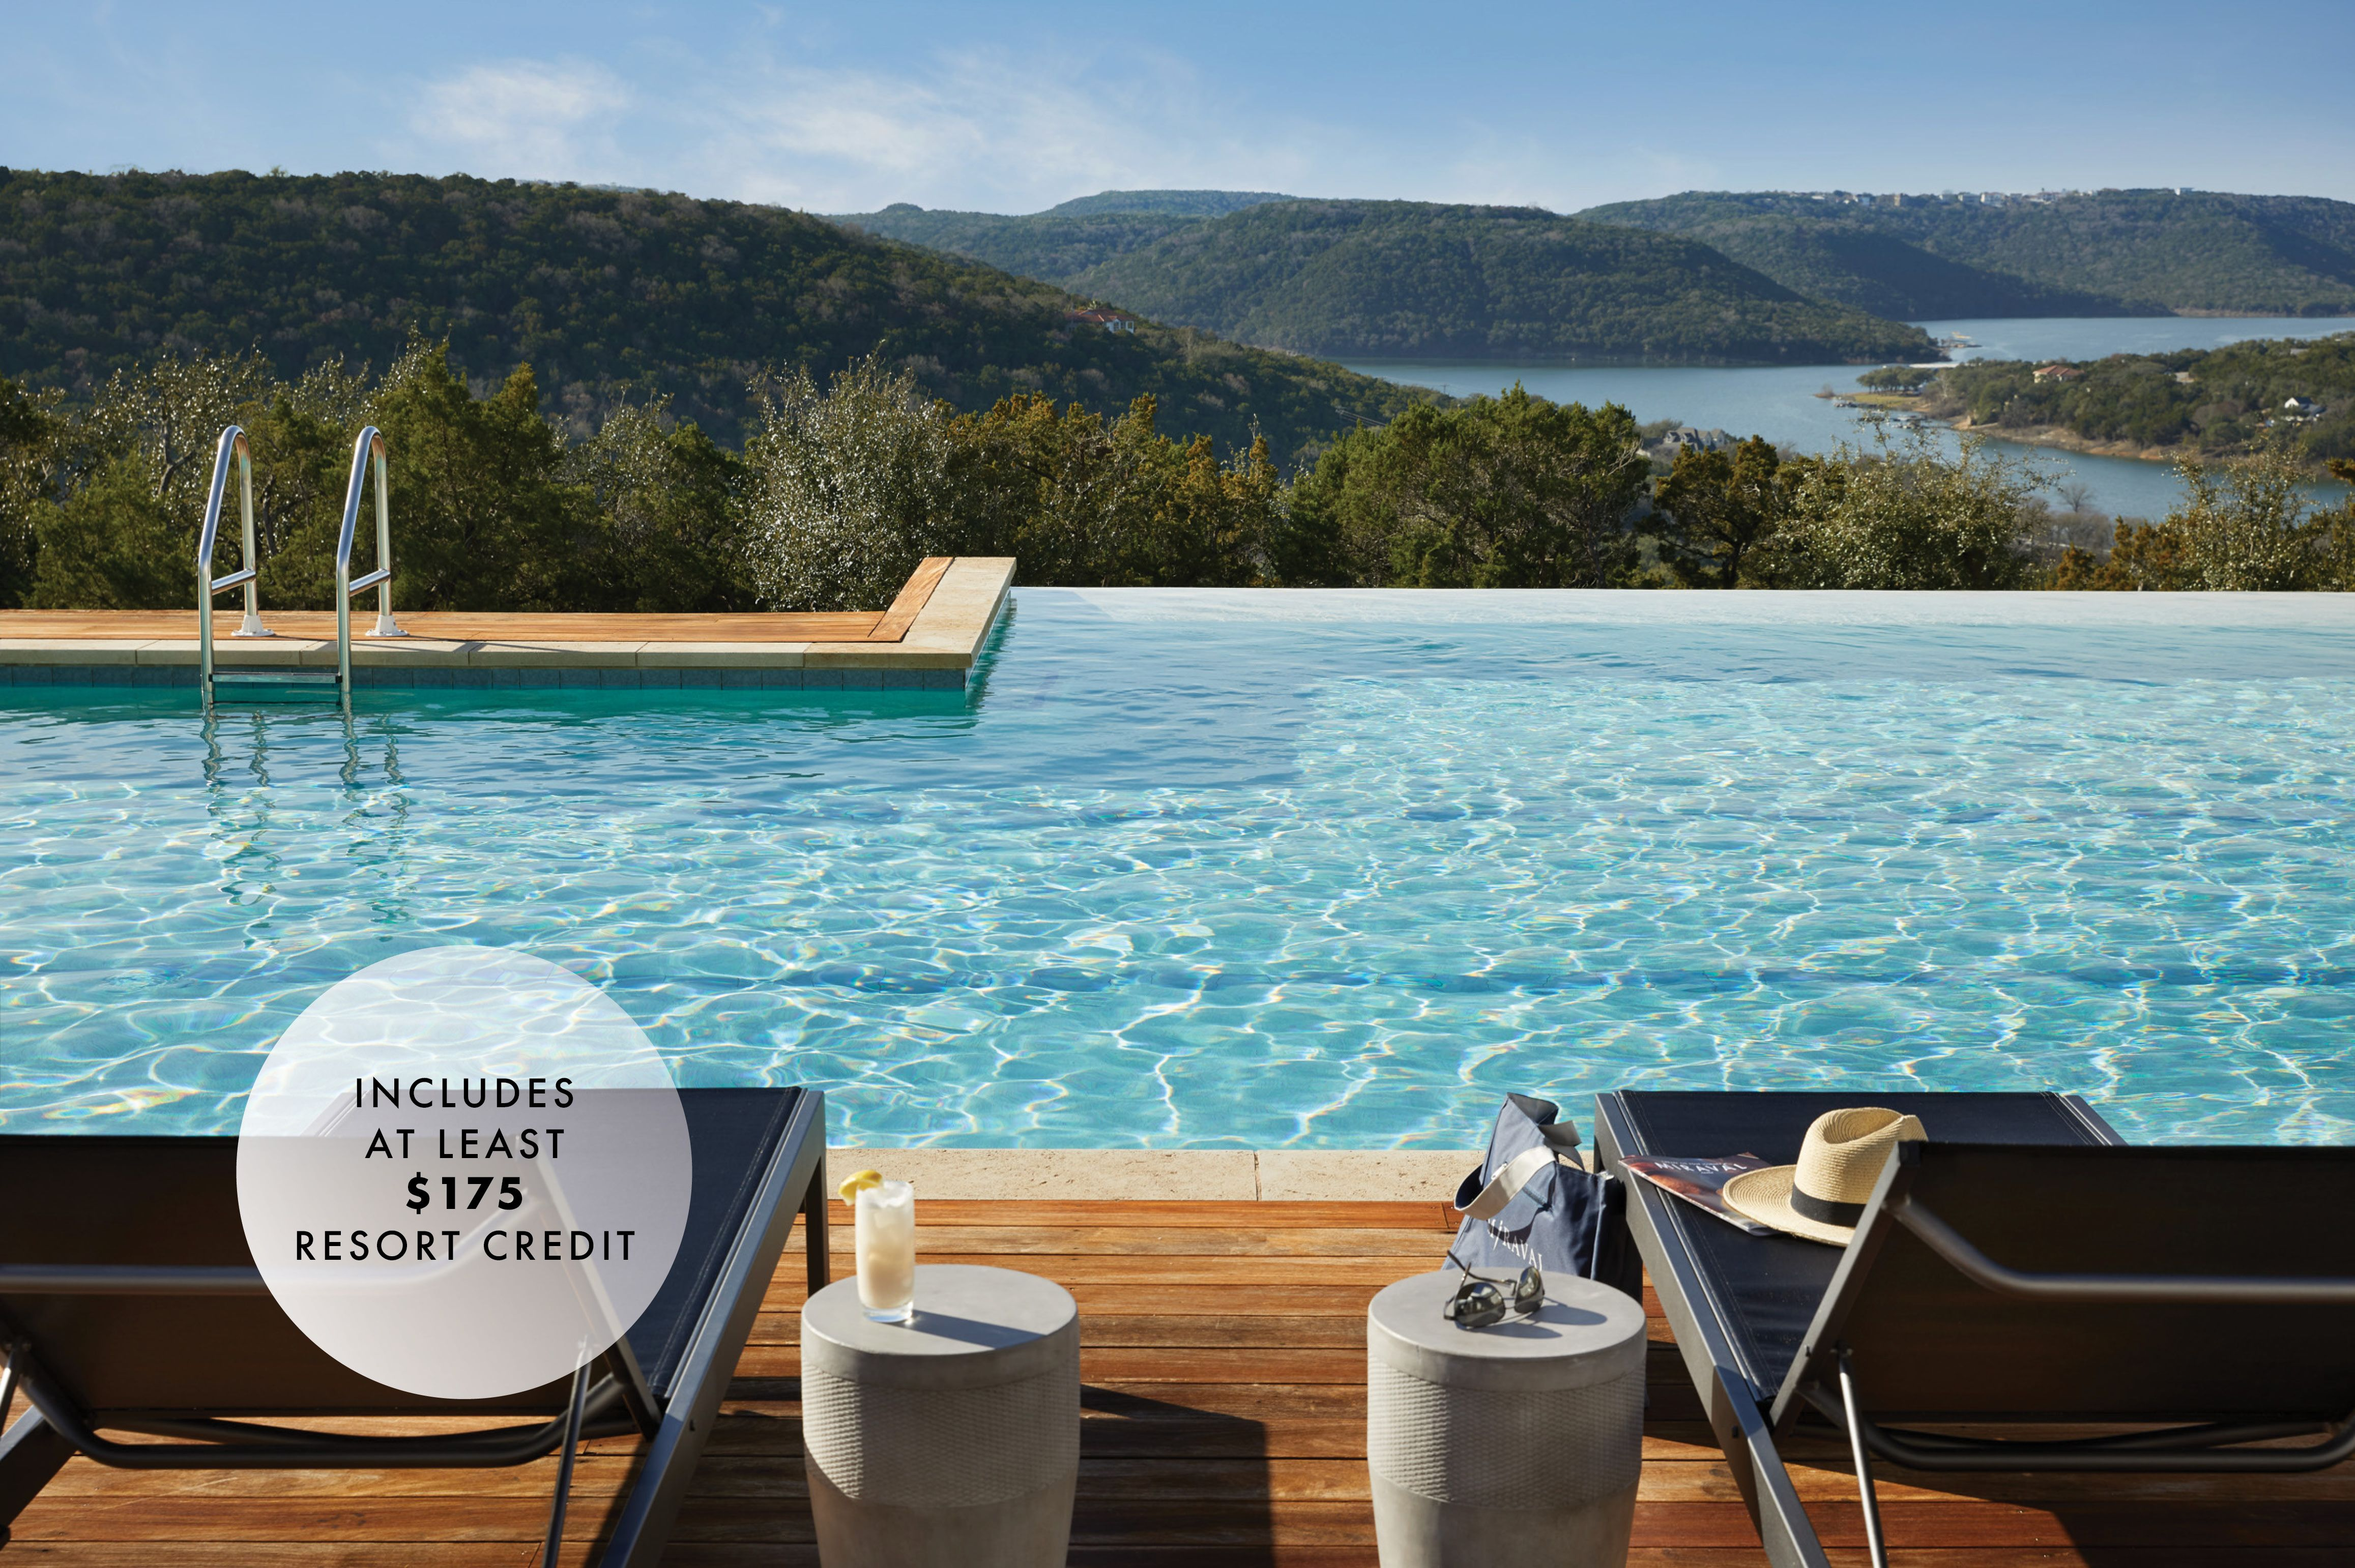 Resortpass Buy A Day Pass To A Hotel Or Resort Starting At Only 25 Austin Resorts Miraval Resort Wellness Resort